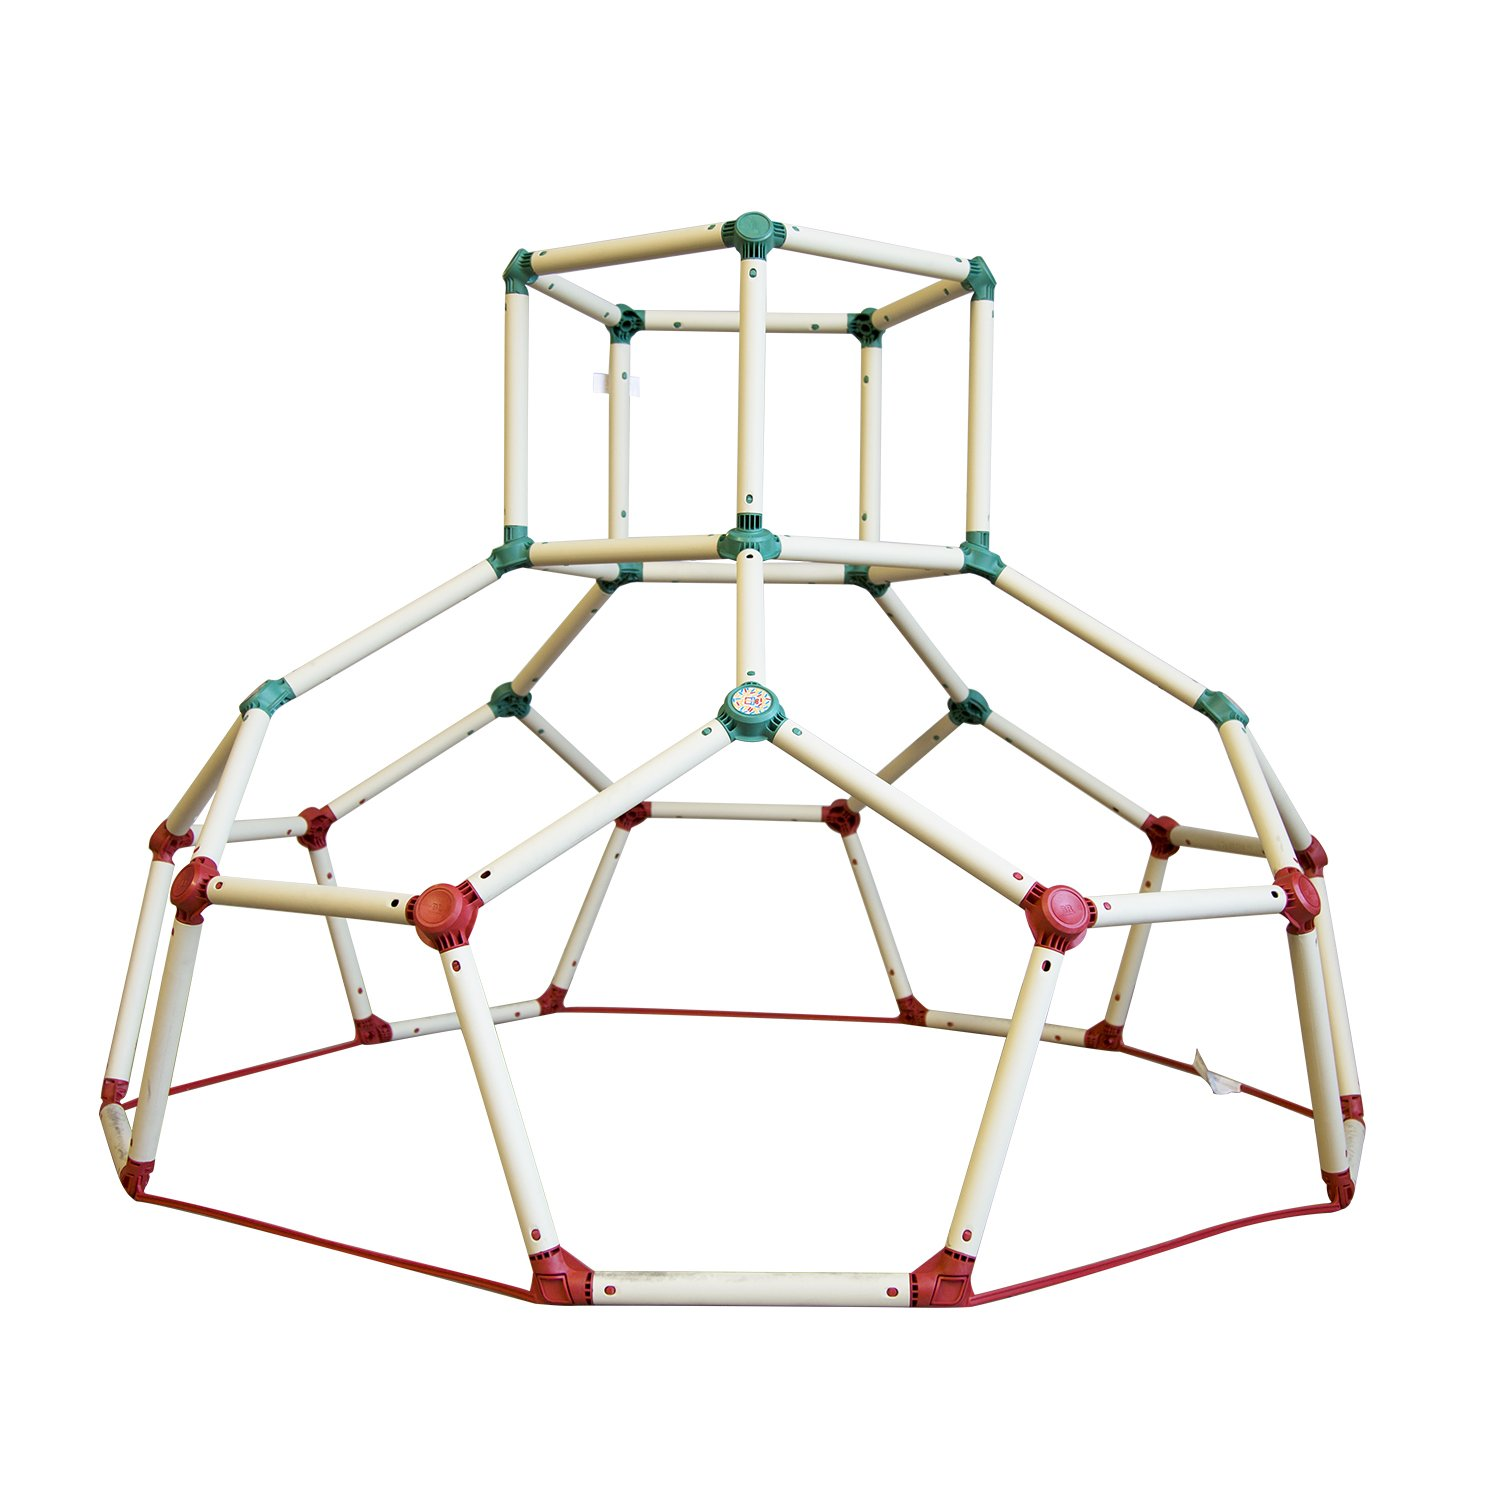 Lil' Monkey Dome Climber - Jungle Gym Playground Equipment, Climbing Structures for Kids and Toddlers, Backyard Outside Toddler Toys, Monkey Bars Climbing Tower Ages 3-6 by Lil' Monkey